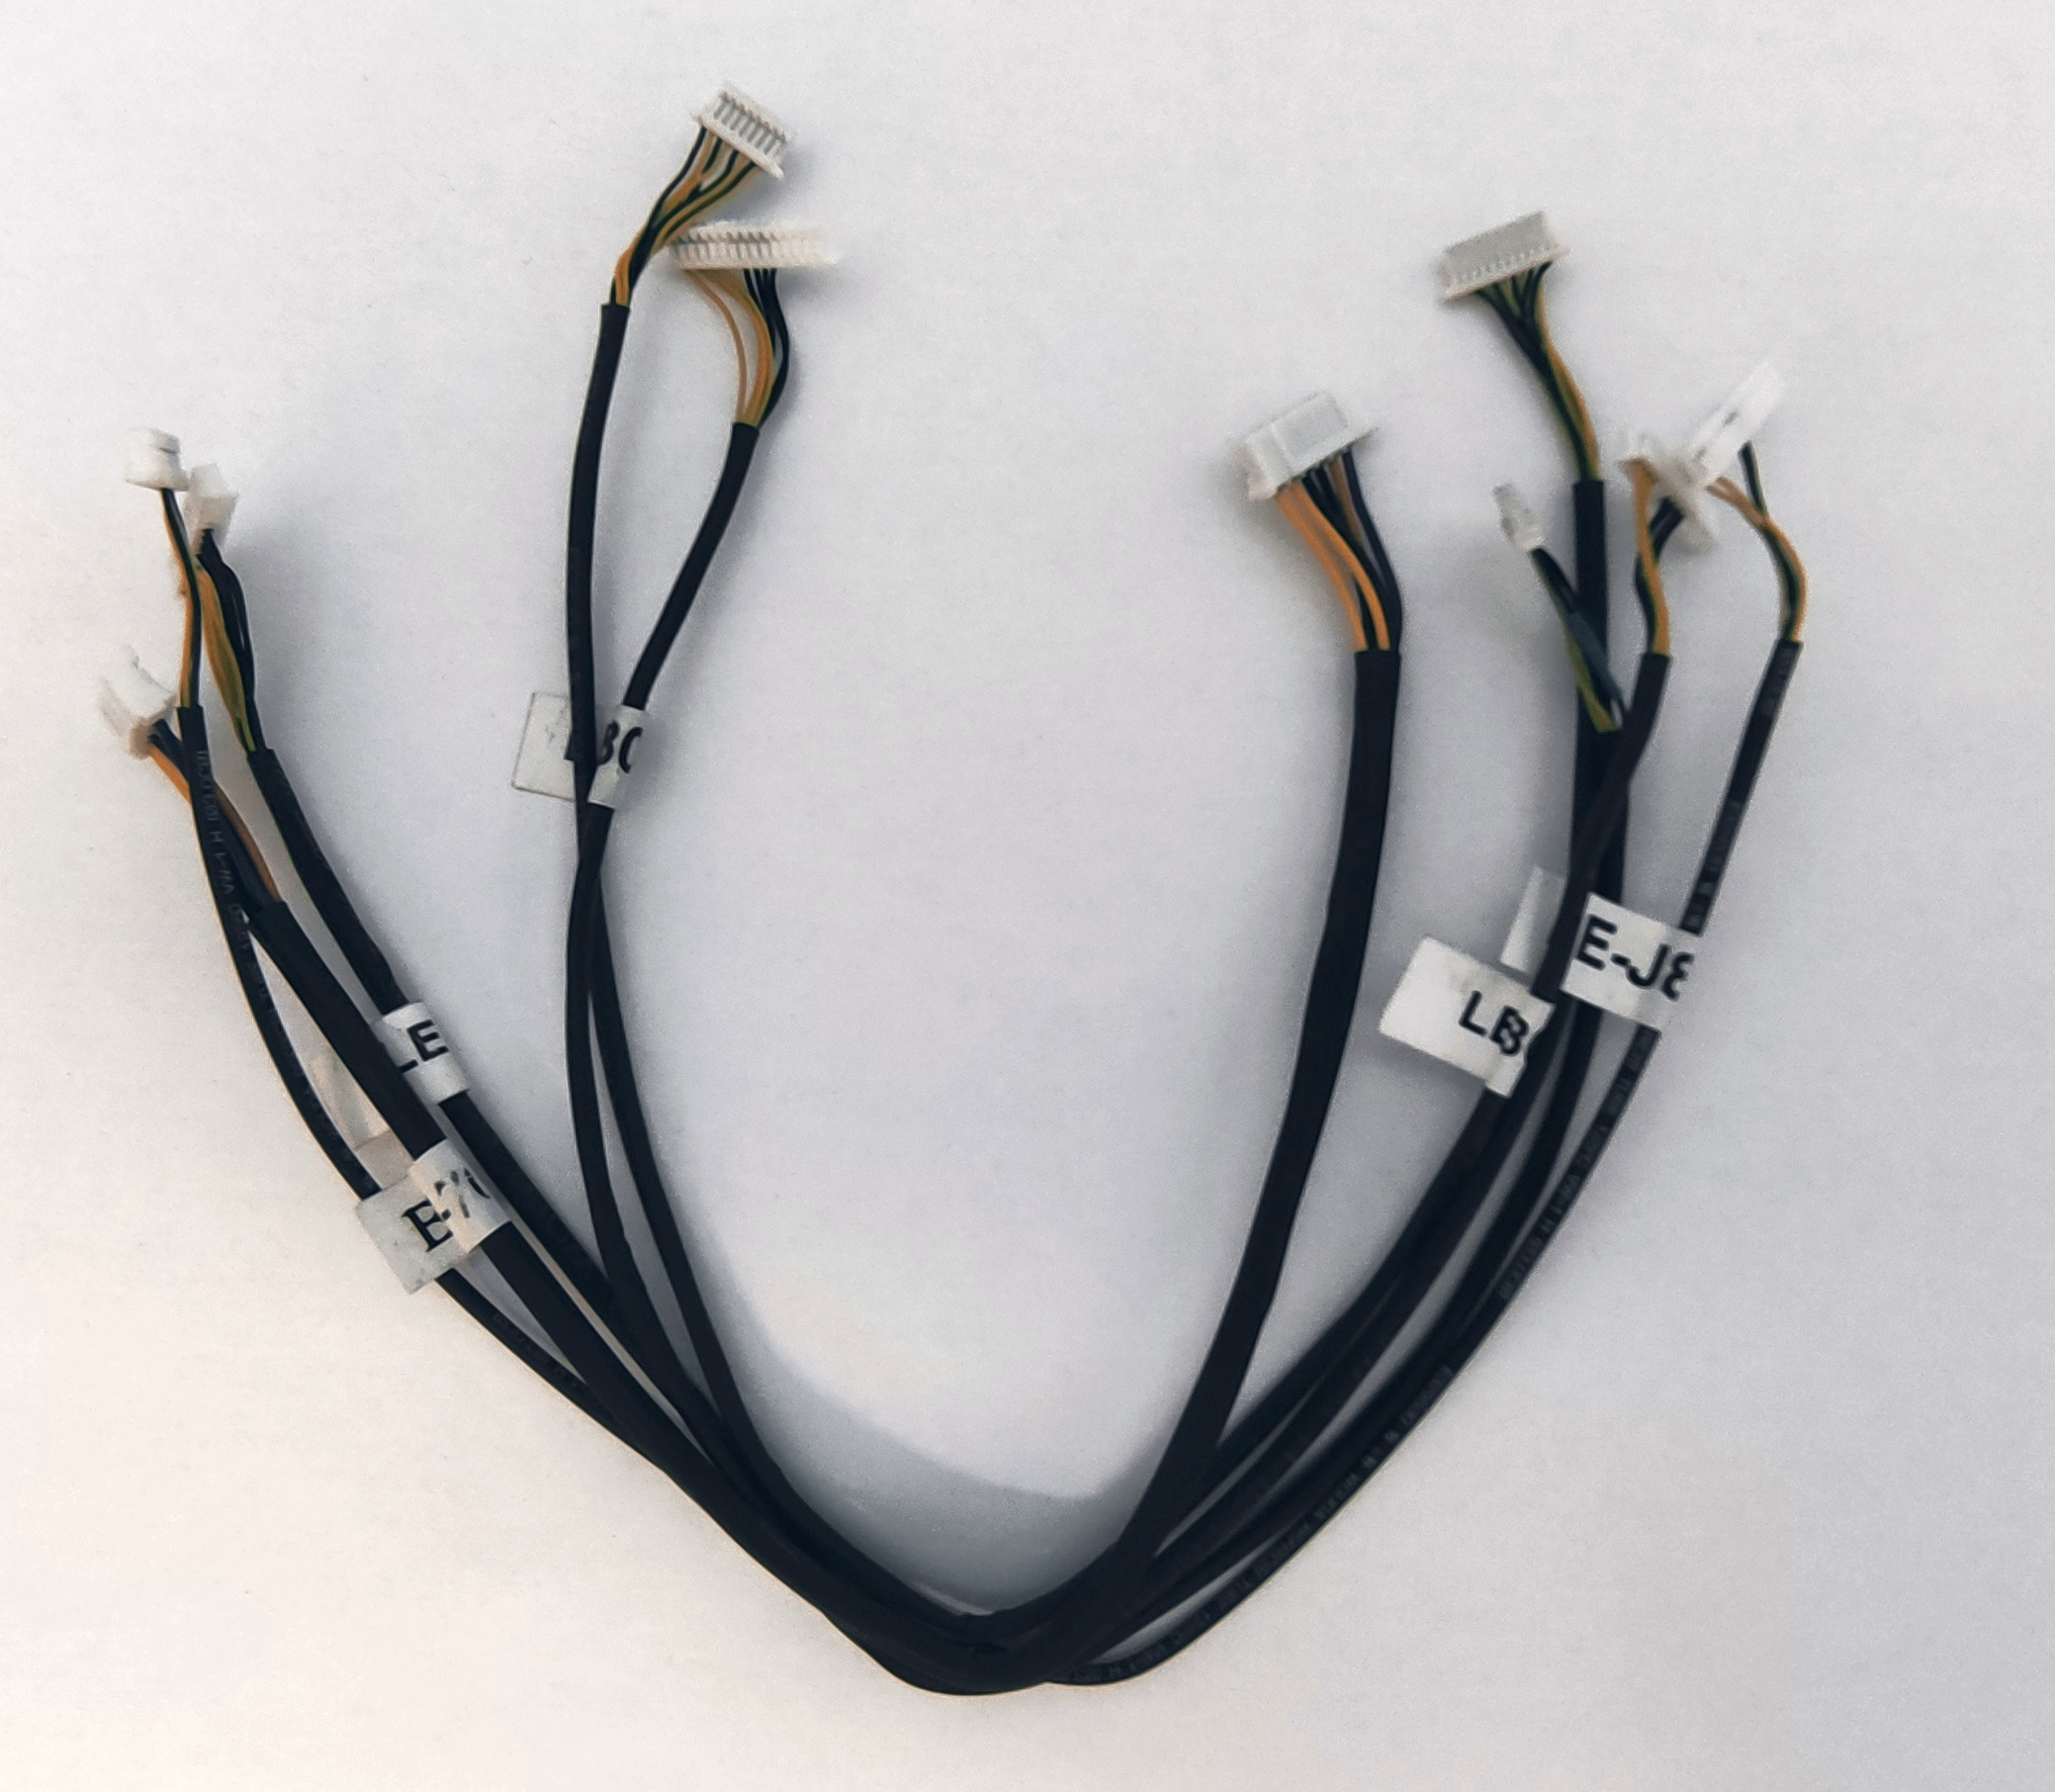 BT-cable-70643